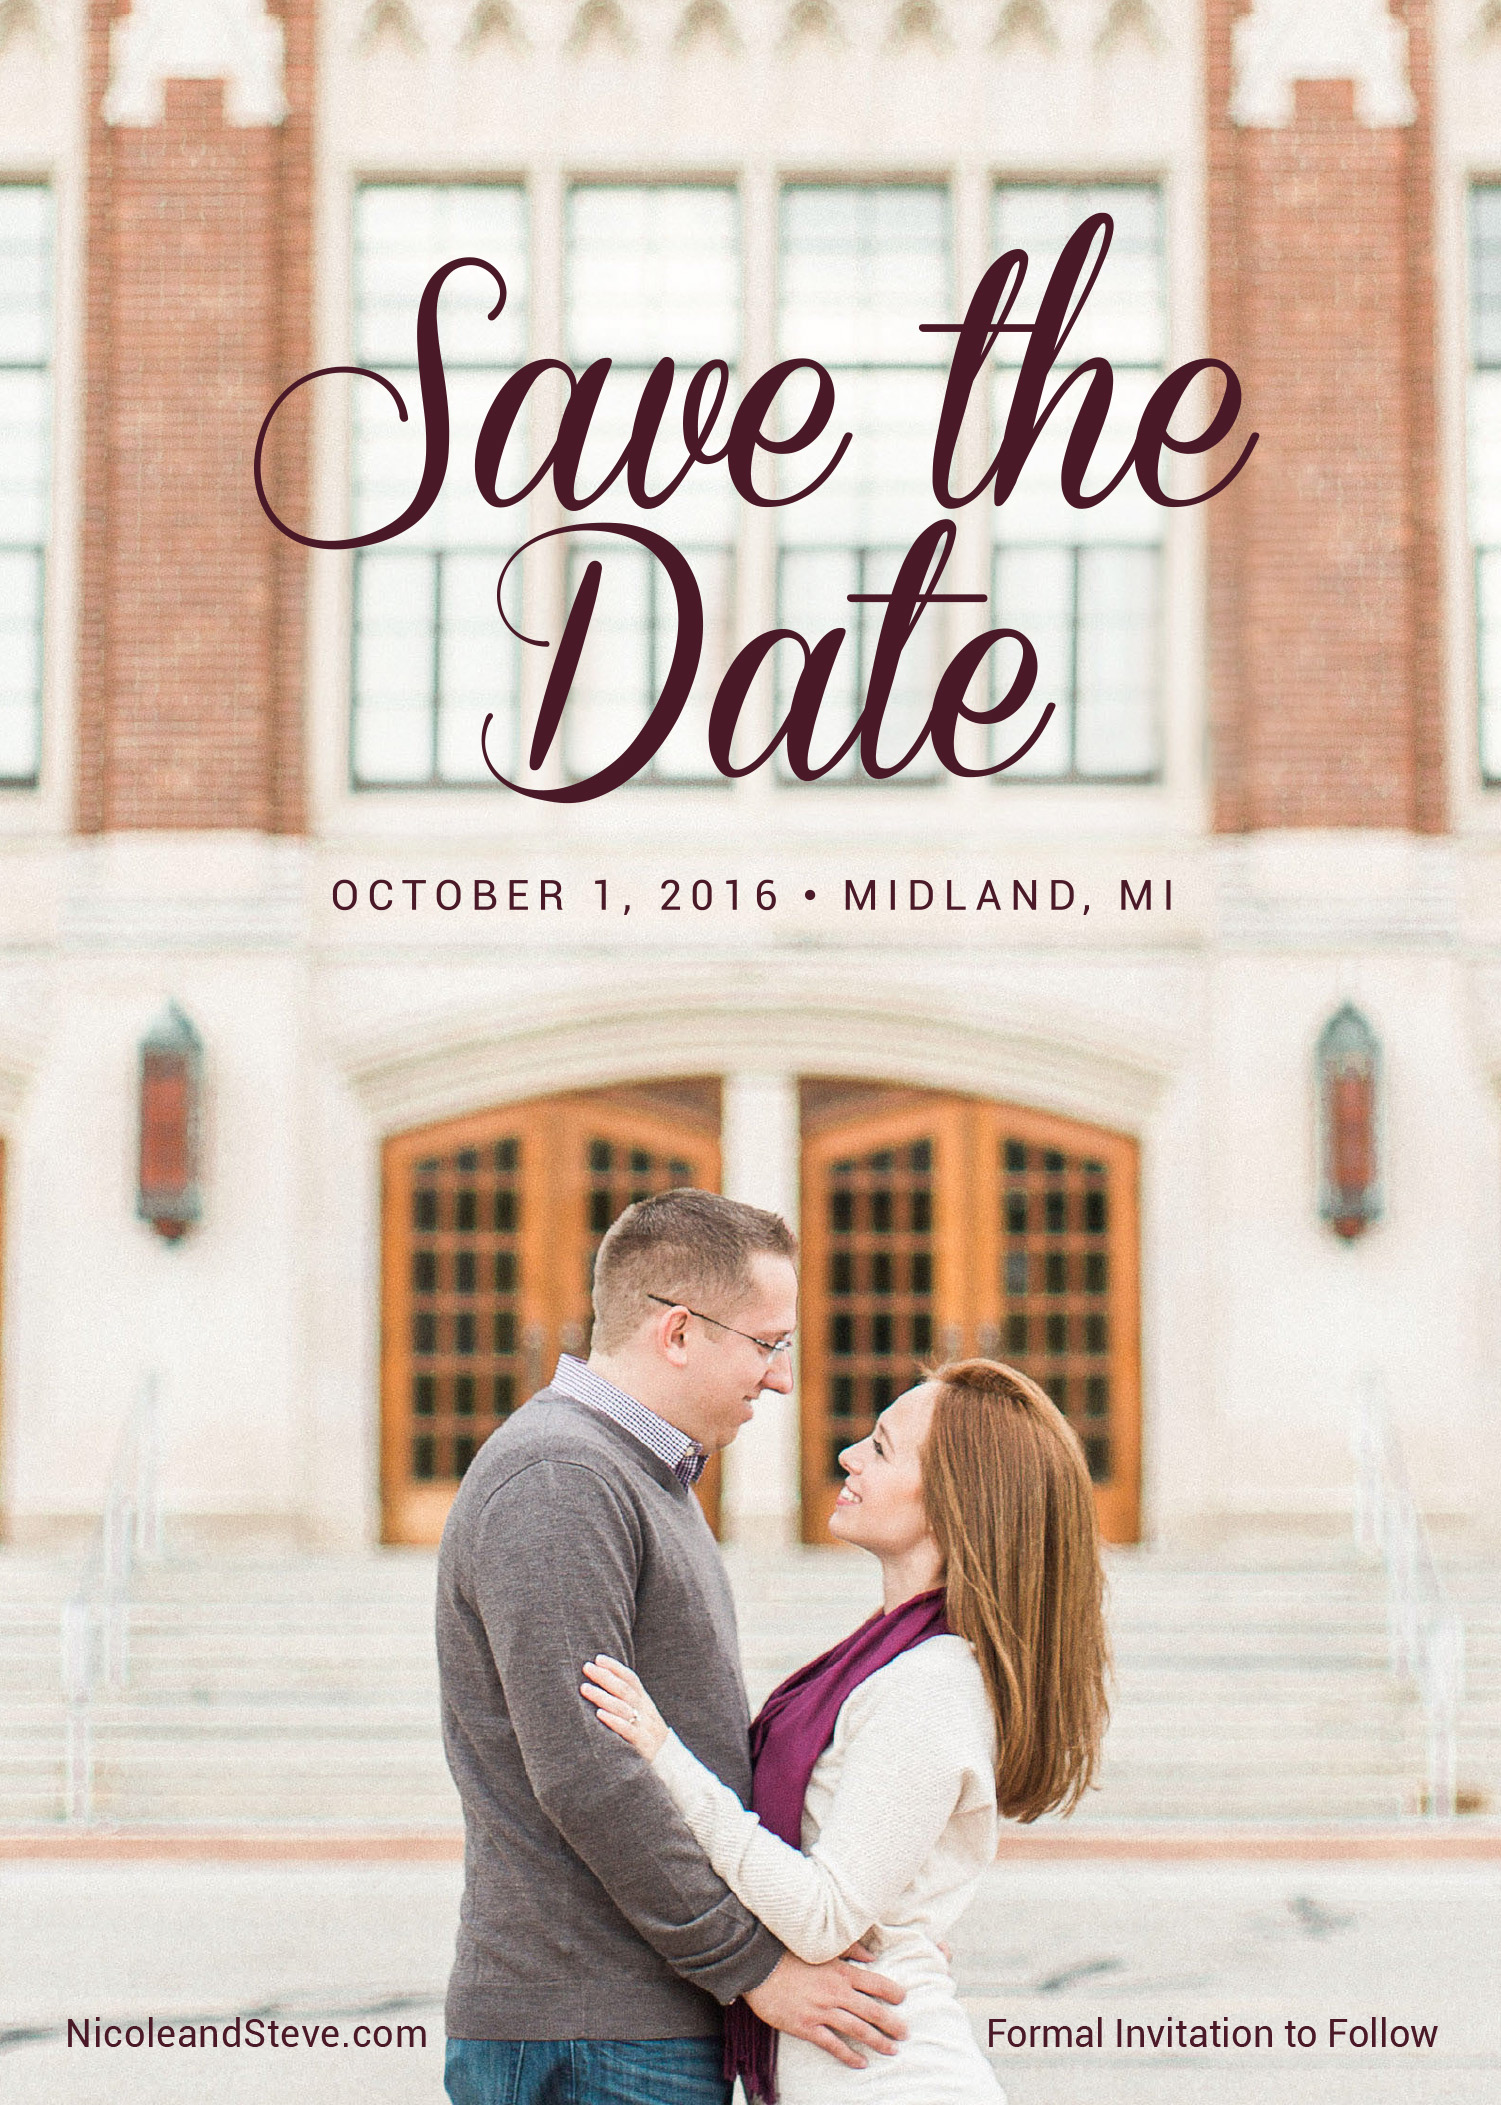 Nicole and Steve_Save the Date_Final-1.jpg